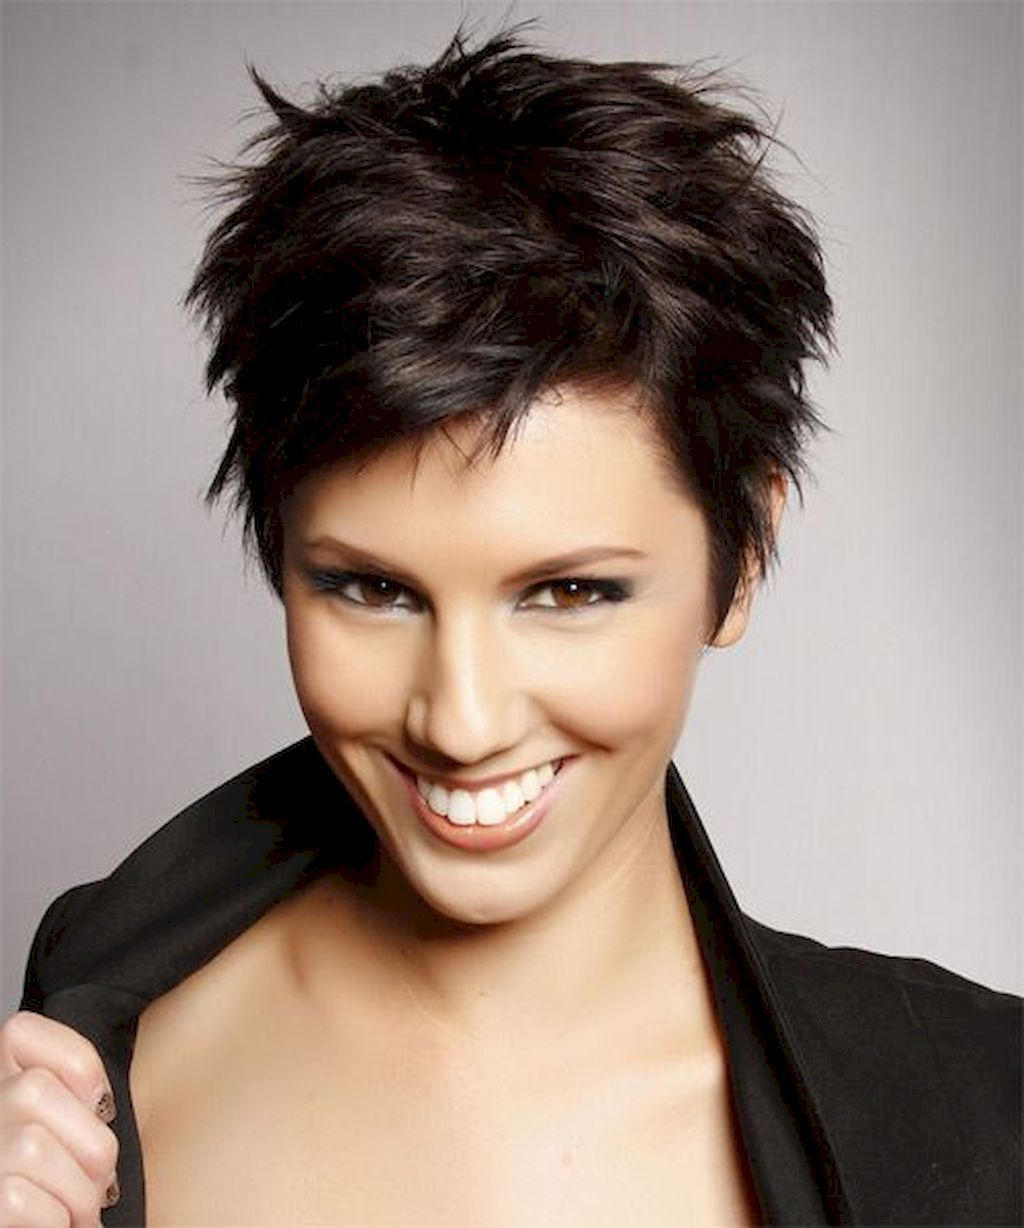 Adorable 72 Classy Short Pixie Haircuts And Hairstyles For Thick In Asymmetrical Haircuts For Thick Hair (View 16 of 20)